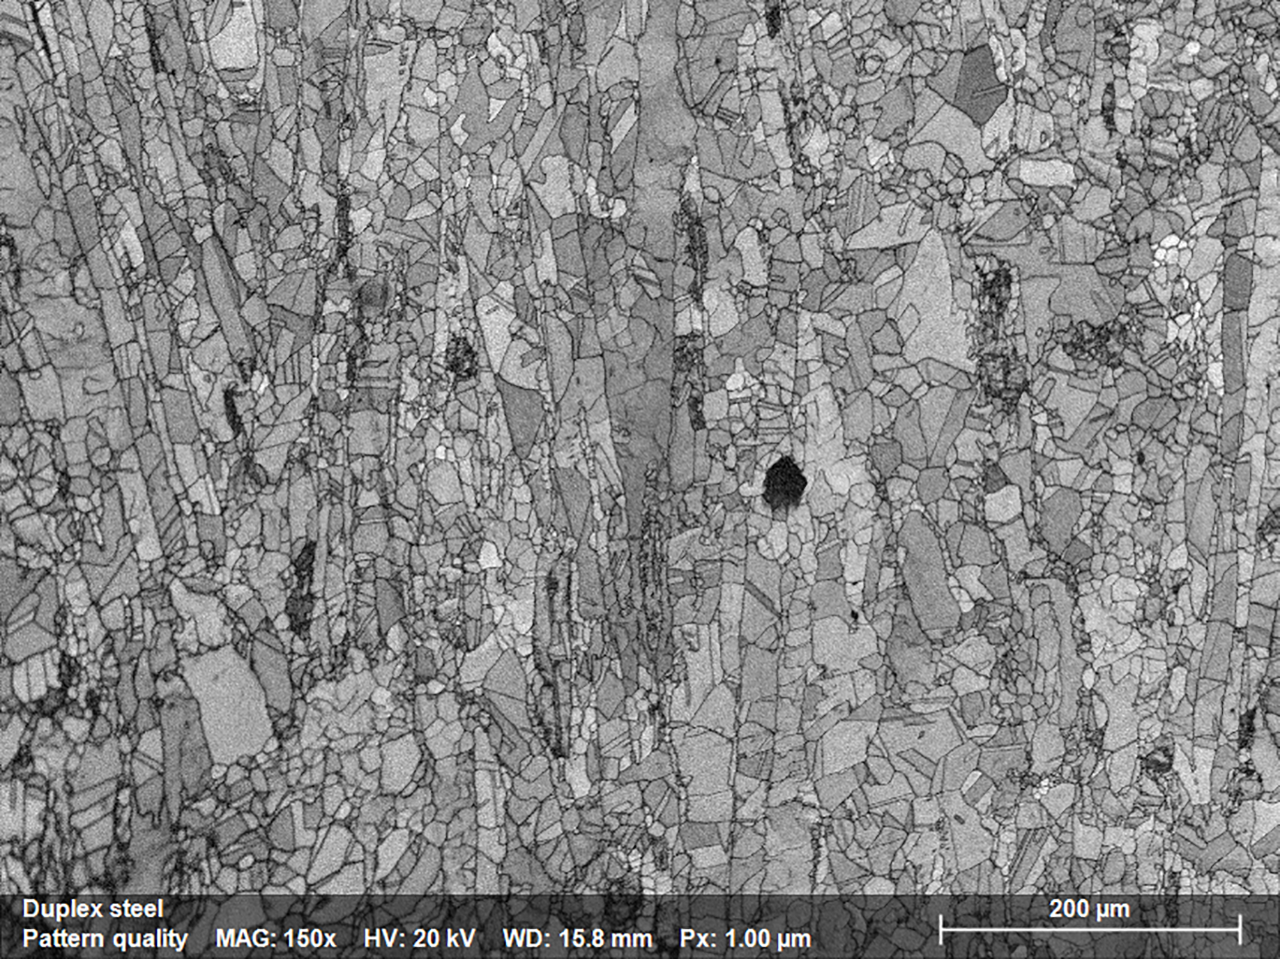 Fig. 1.1: Pattern Quality Map depicting the microstructure of a stainless steel sample; map was acquired using e-Flash XS EBSD detector mounted on JSM IT200 SEM.